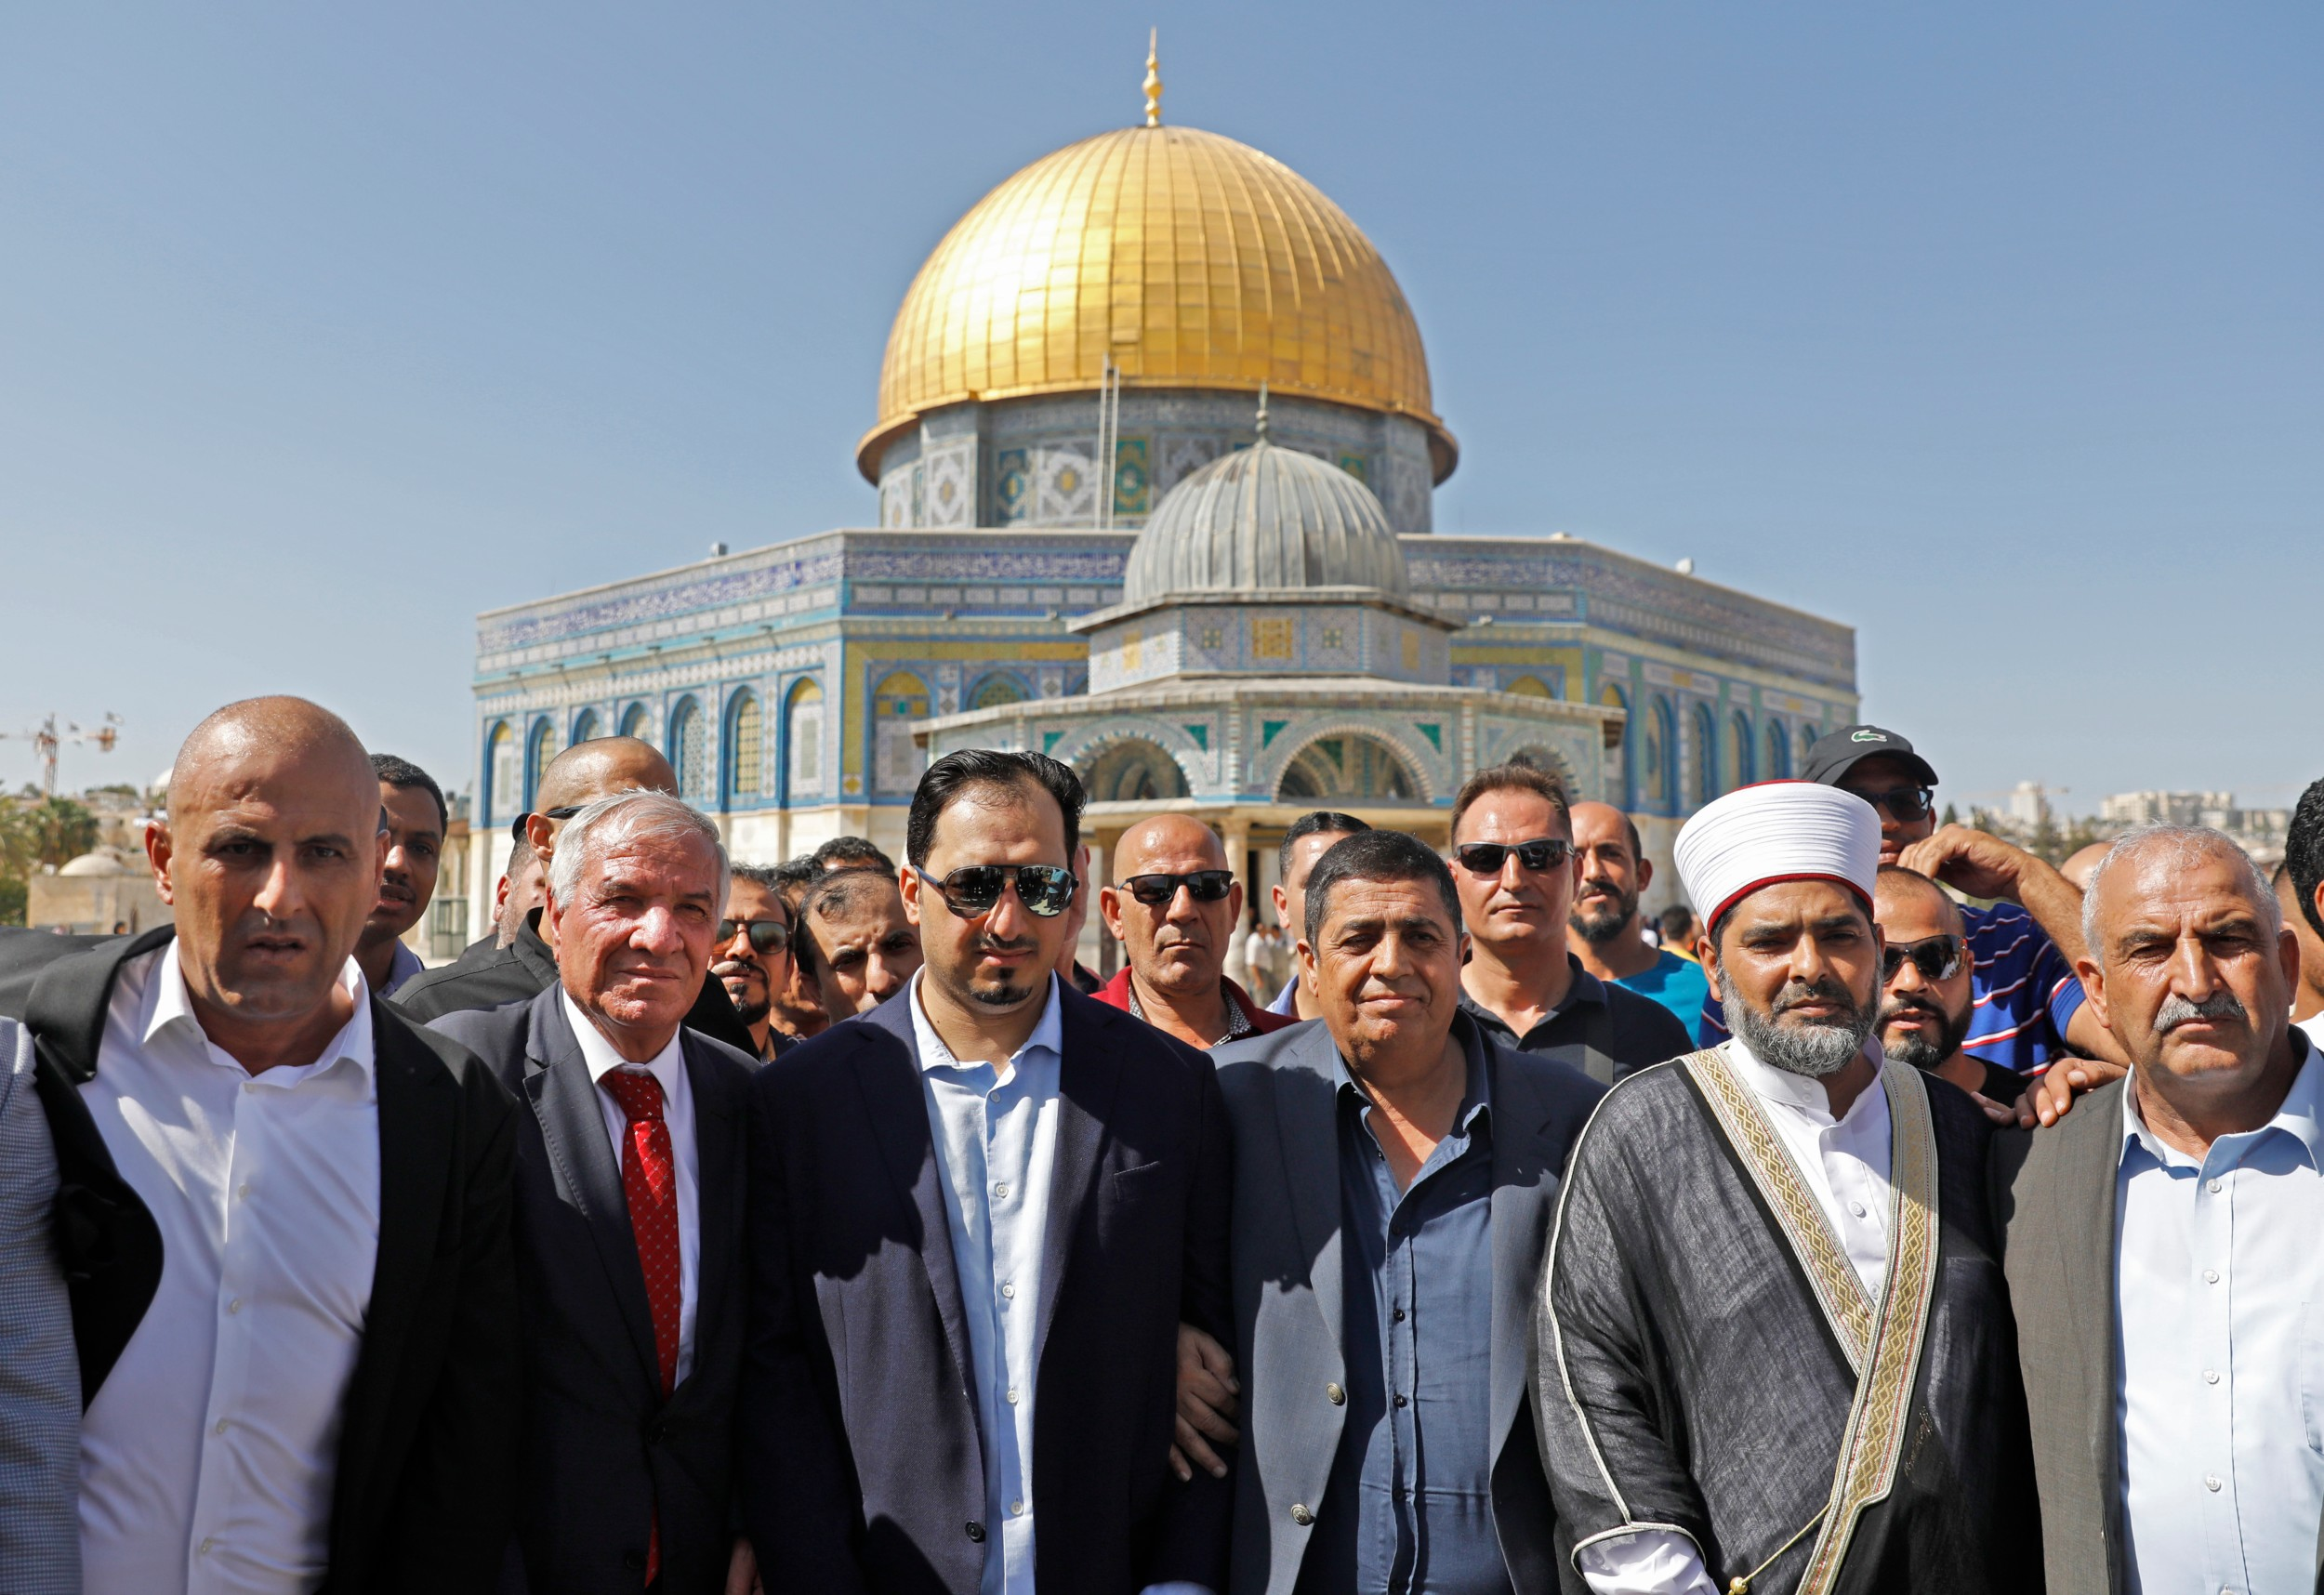 Saudi Football Federation chief Yasser Almisehal, centre, and members of the Saudi football delegation visit the Al-Aqsa Mosque compound in the Old City of Jerusalem on 14 October 2019 (AFP)